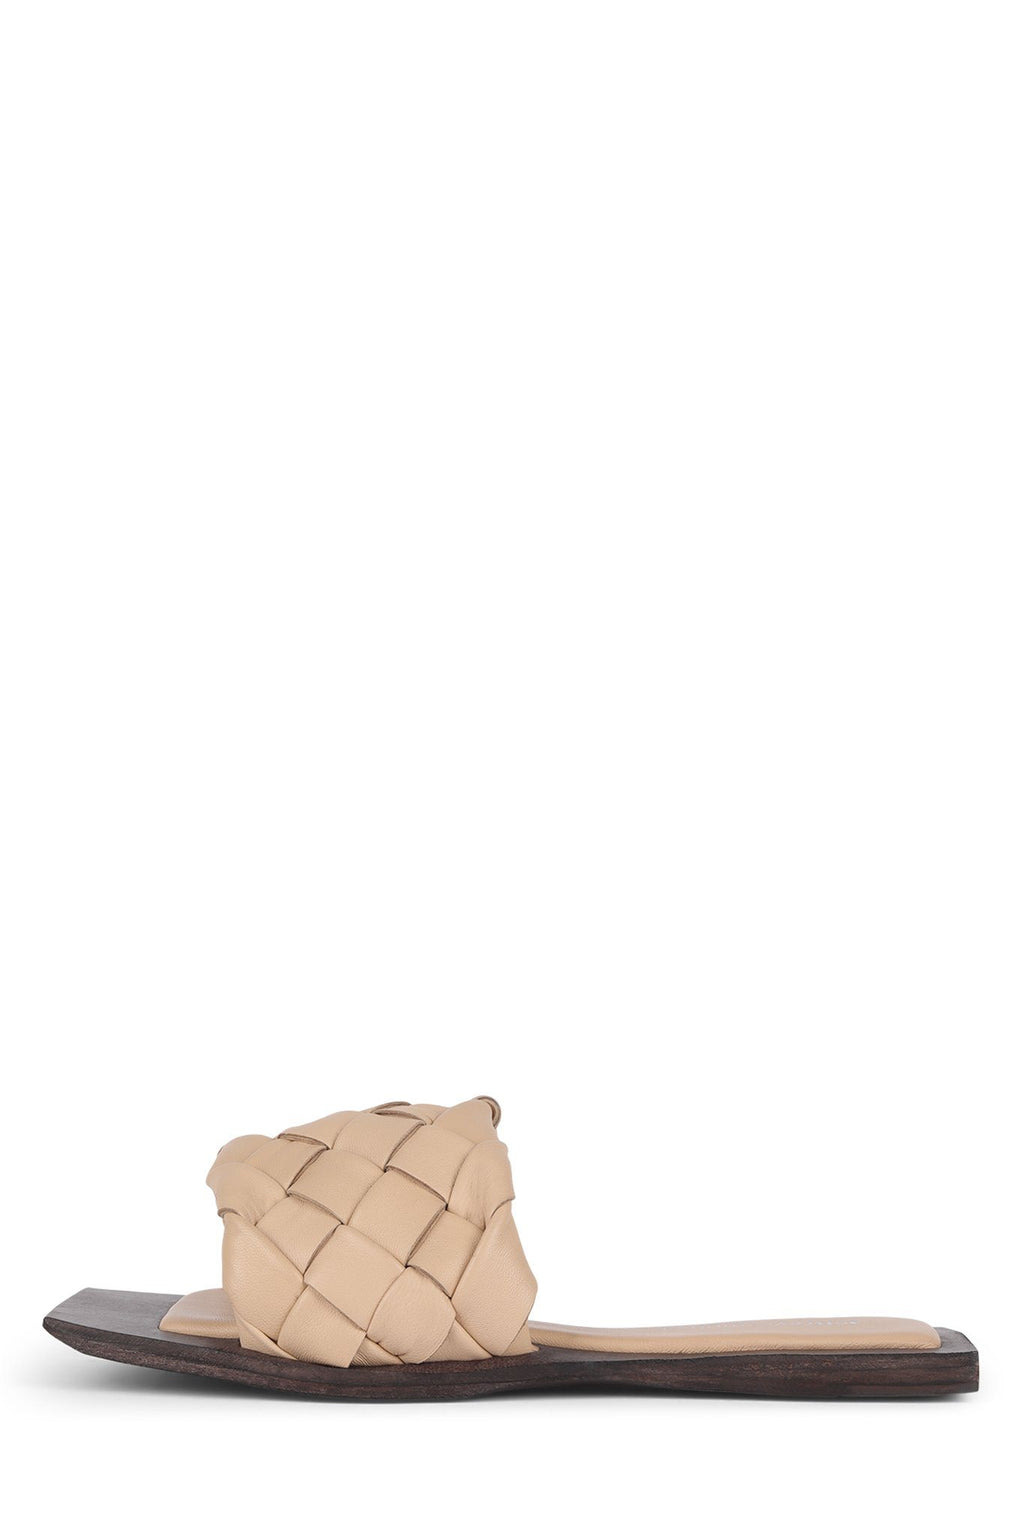 COSTELO-L Flat Sandal Jeffrey Campbell Natural Brown 6